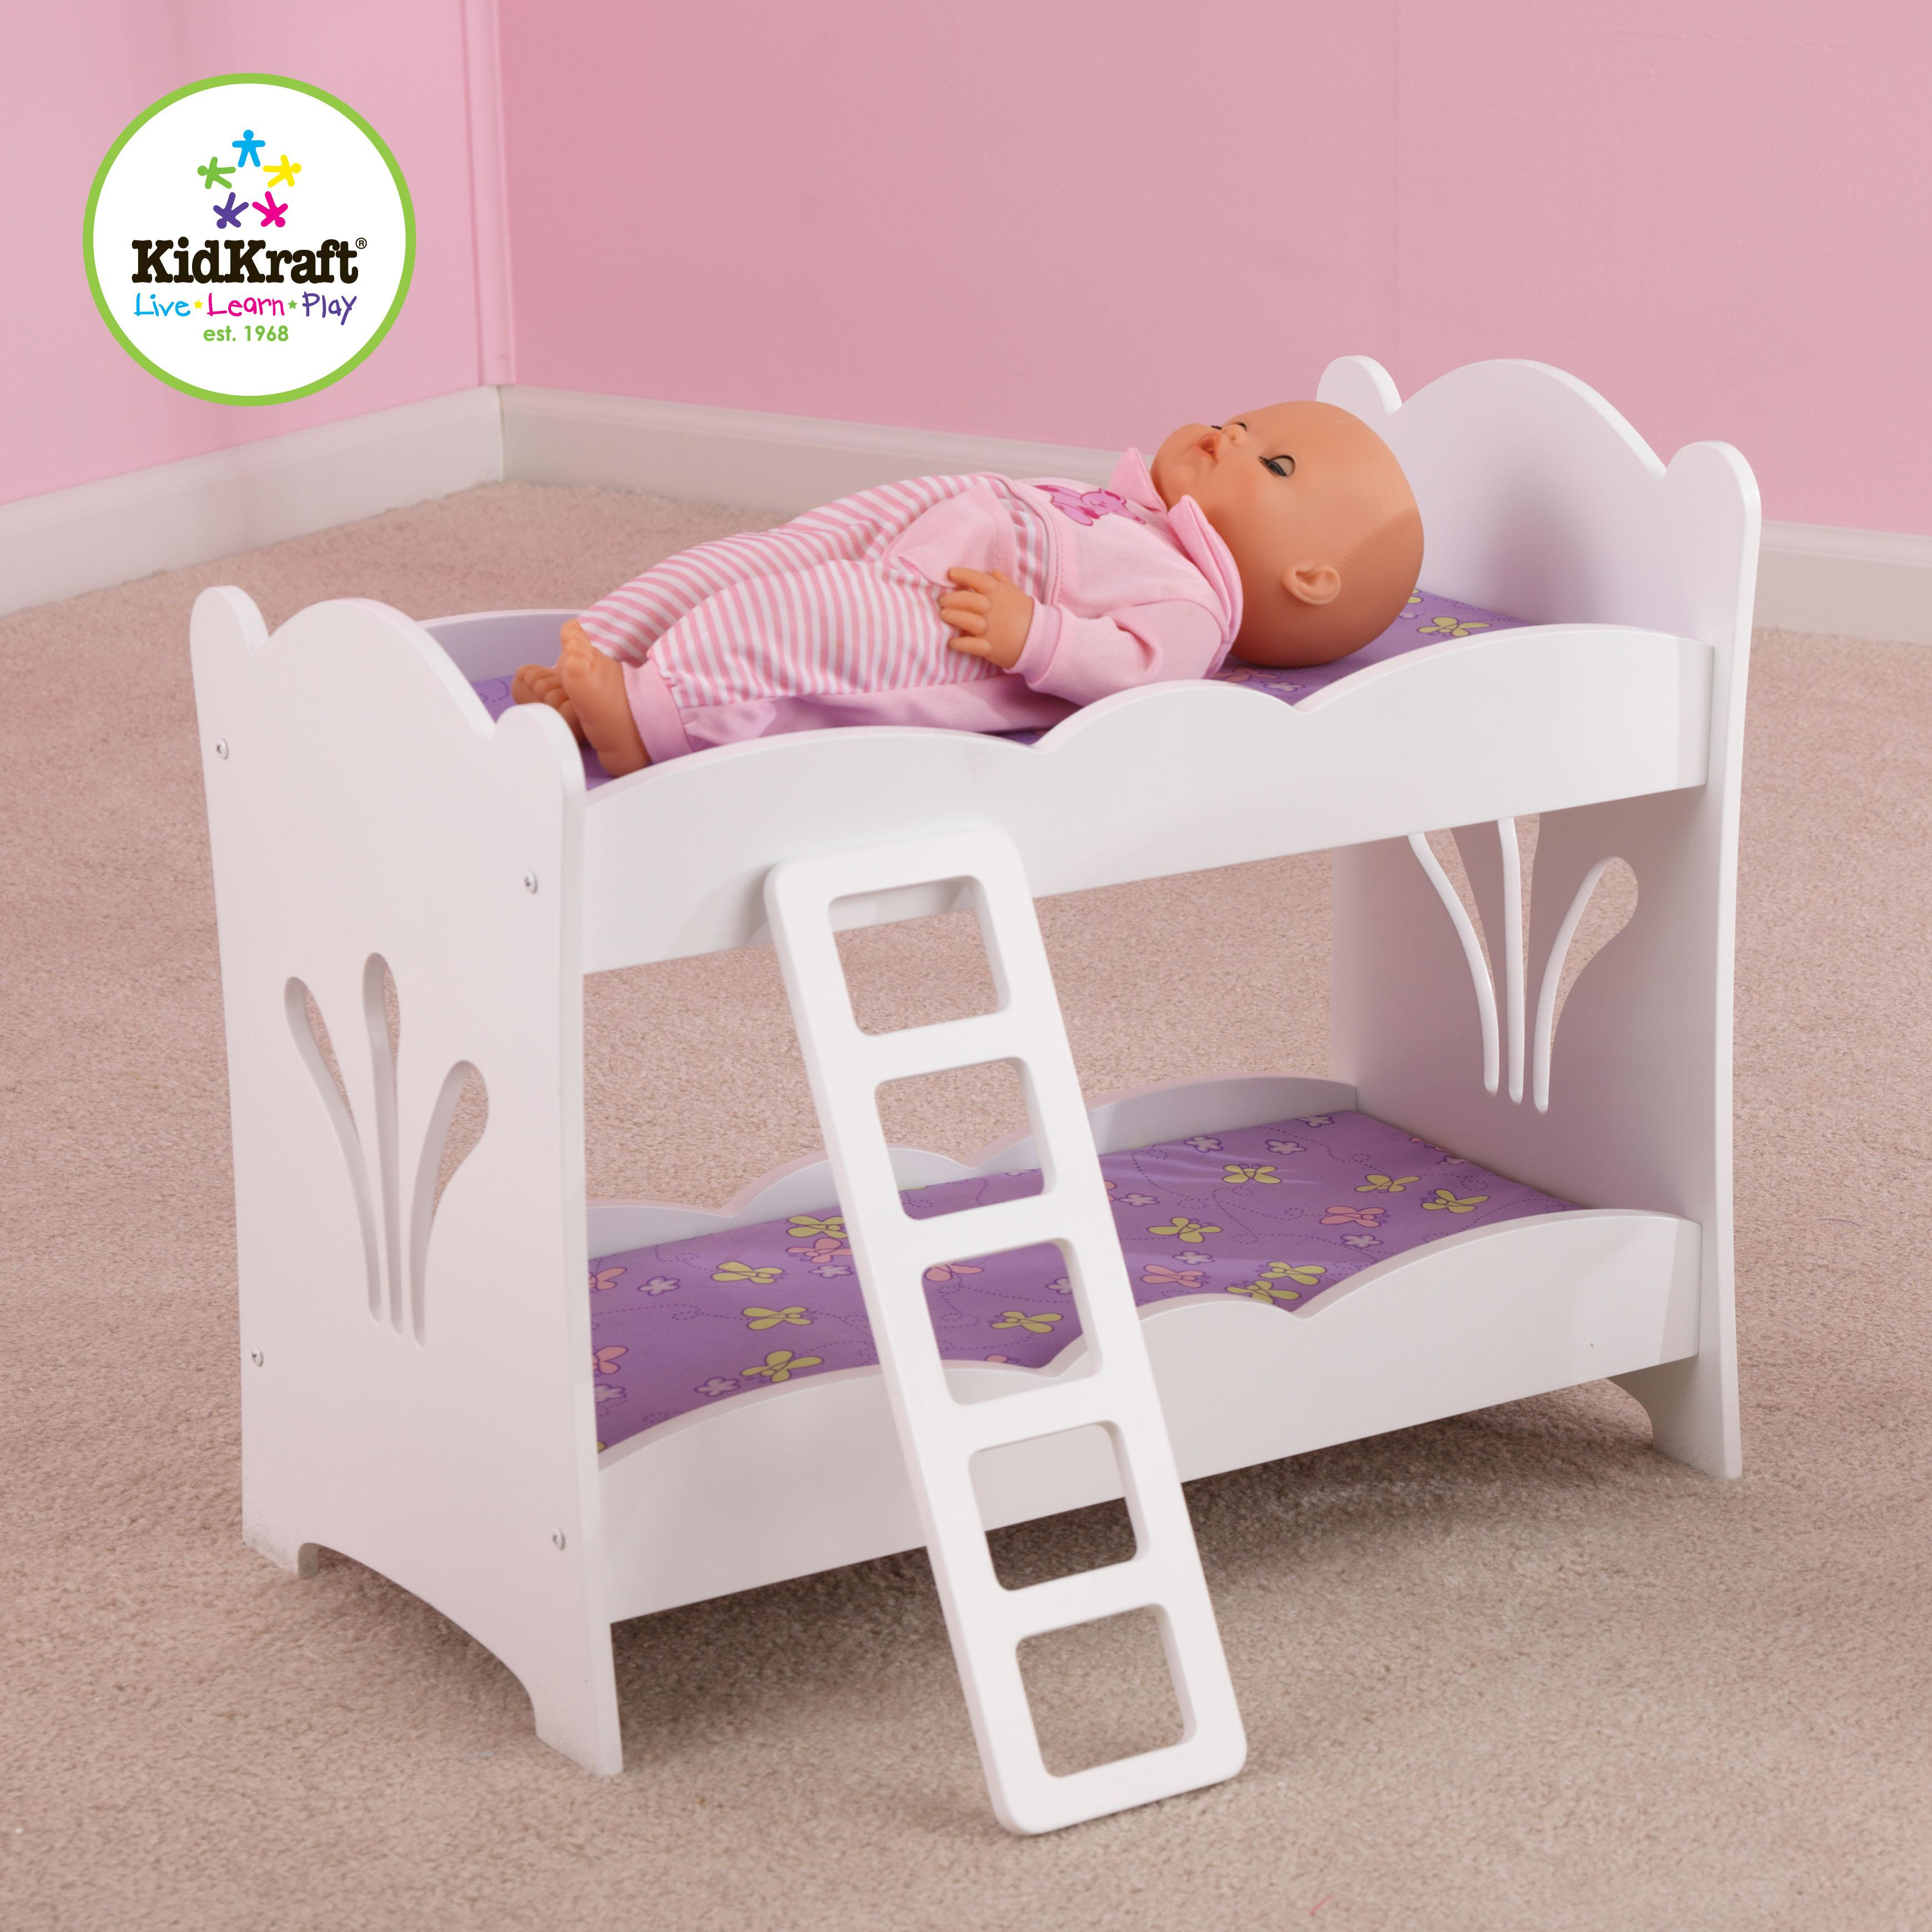 Bunk Bed Dolls: KidKraft Lil Doll Bunk Bed By OJ Commerce 60130